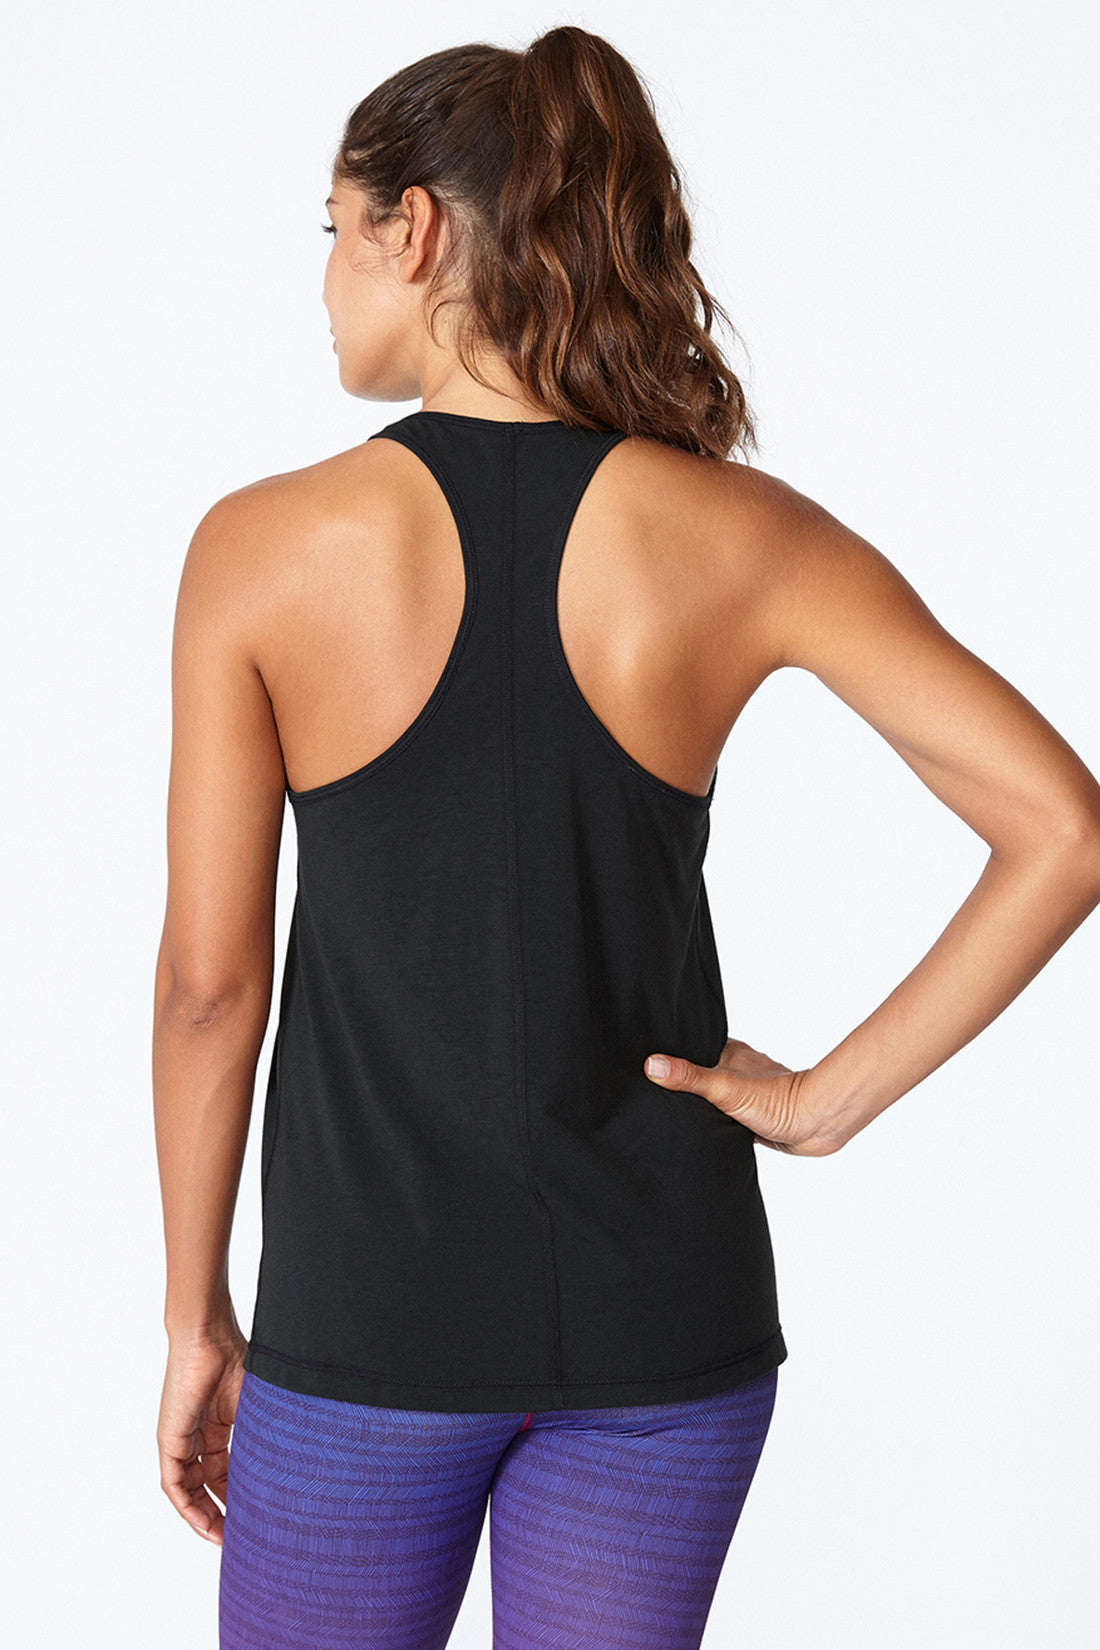 Jessica Racer Back - Black